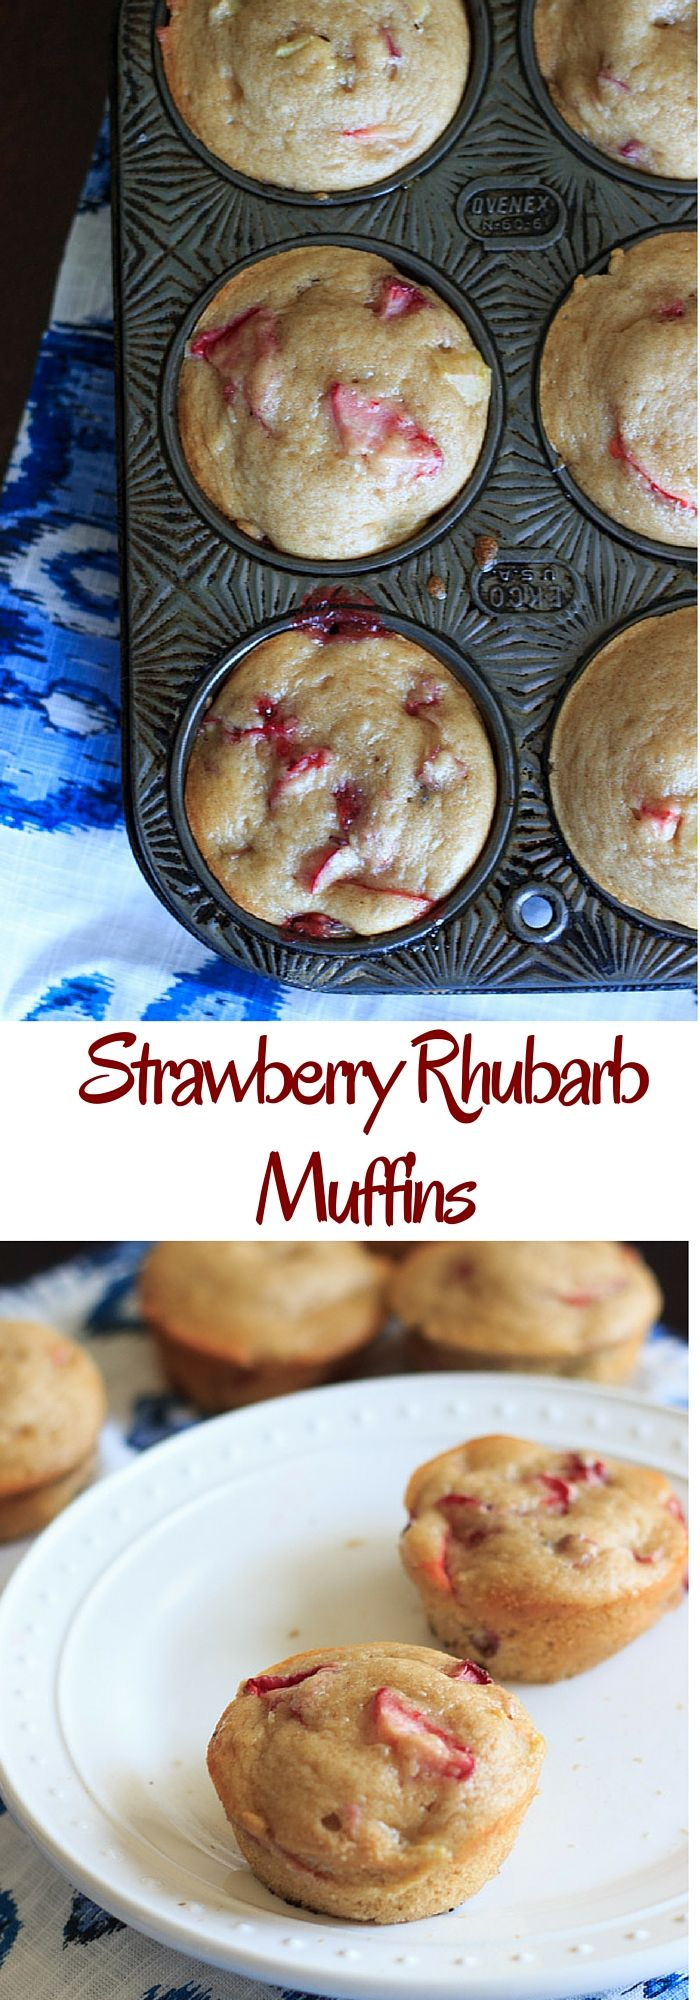 Strawberry rhubarb muffins with a dash of cinnamon, using greek yogurt instead of milk and applesauce instead of oil.